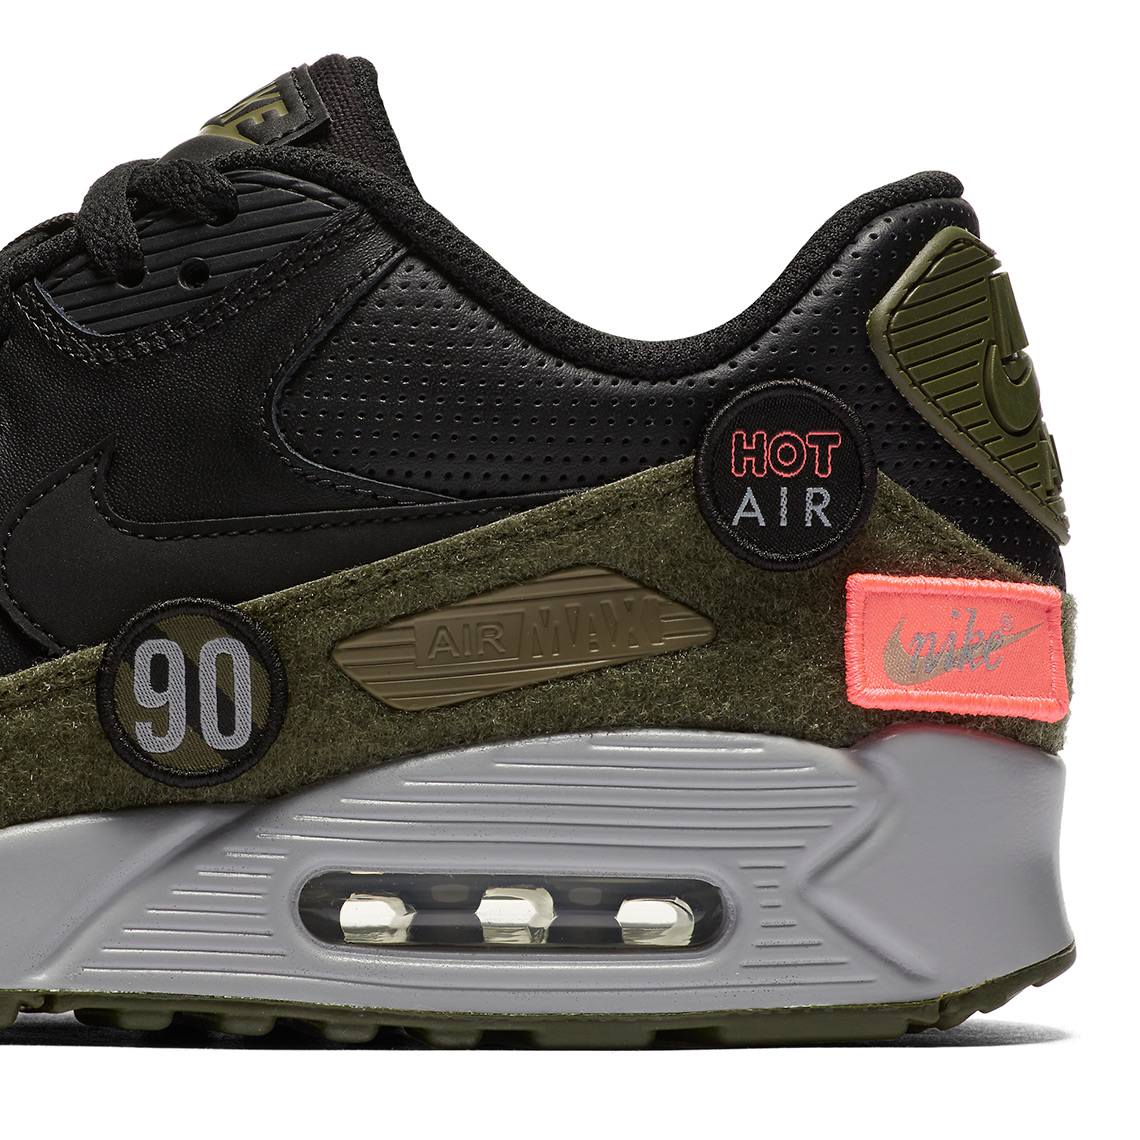 new product designer fashion classic styles A Look at the Nike Air Max 'Hot Air' Pack - WearTesters